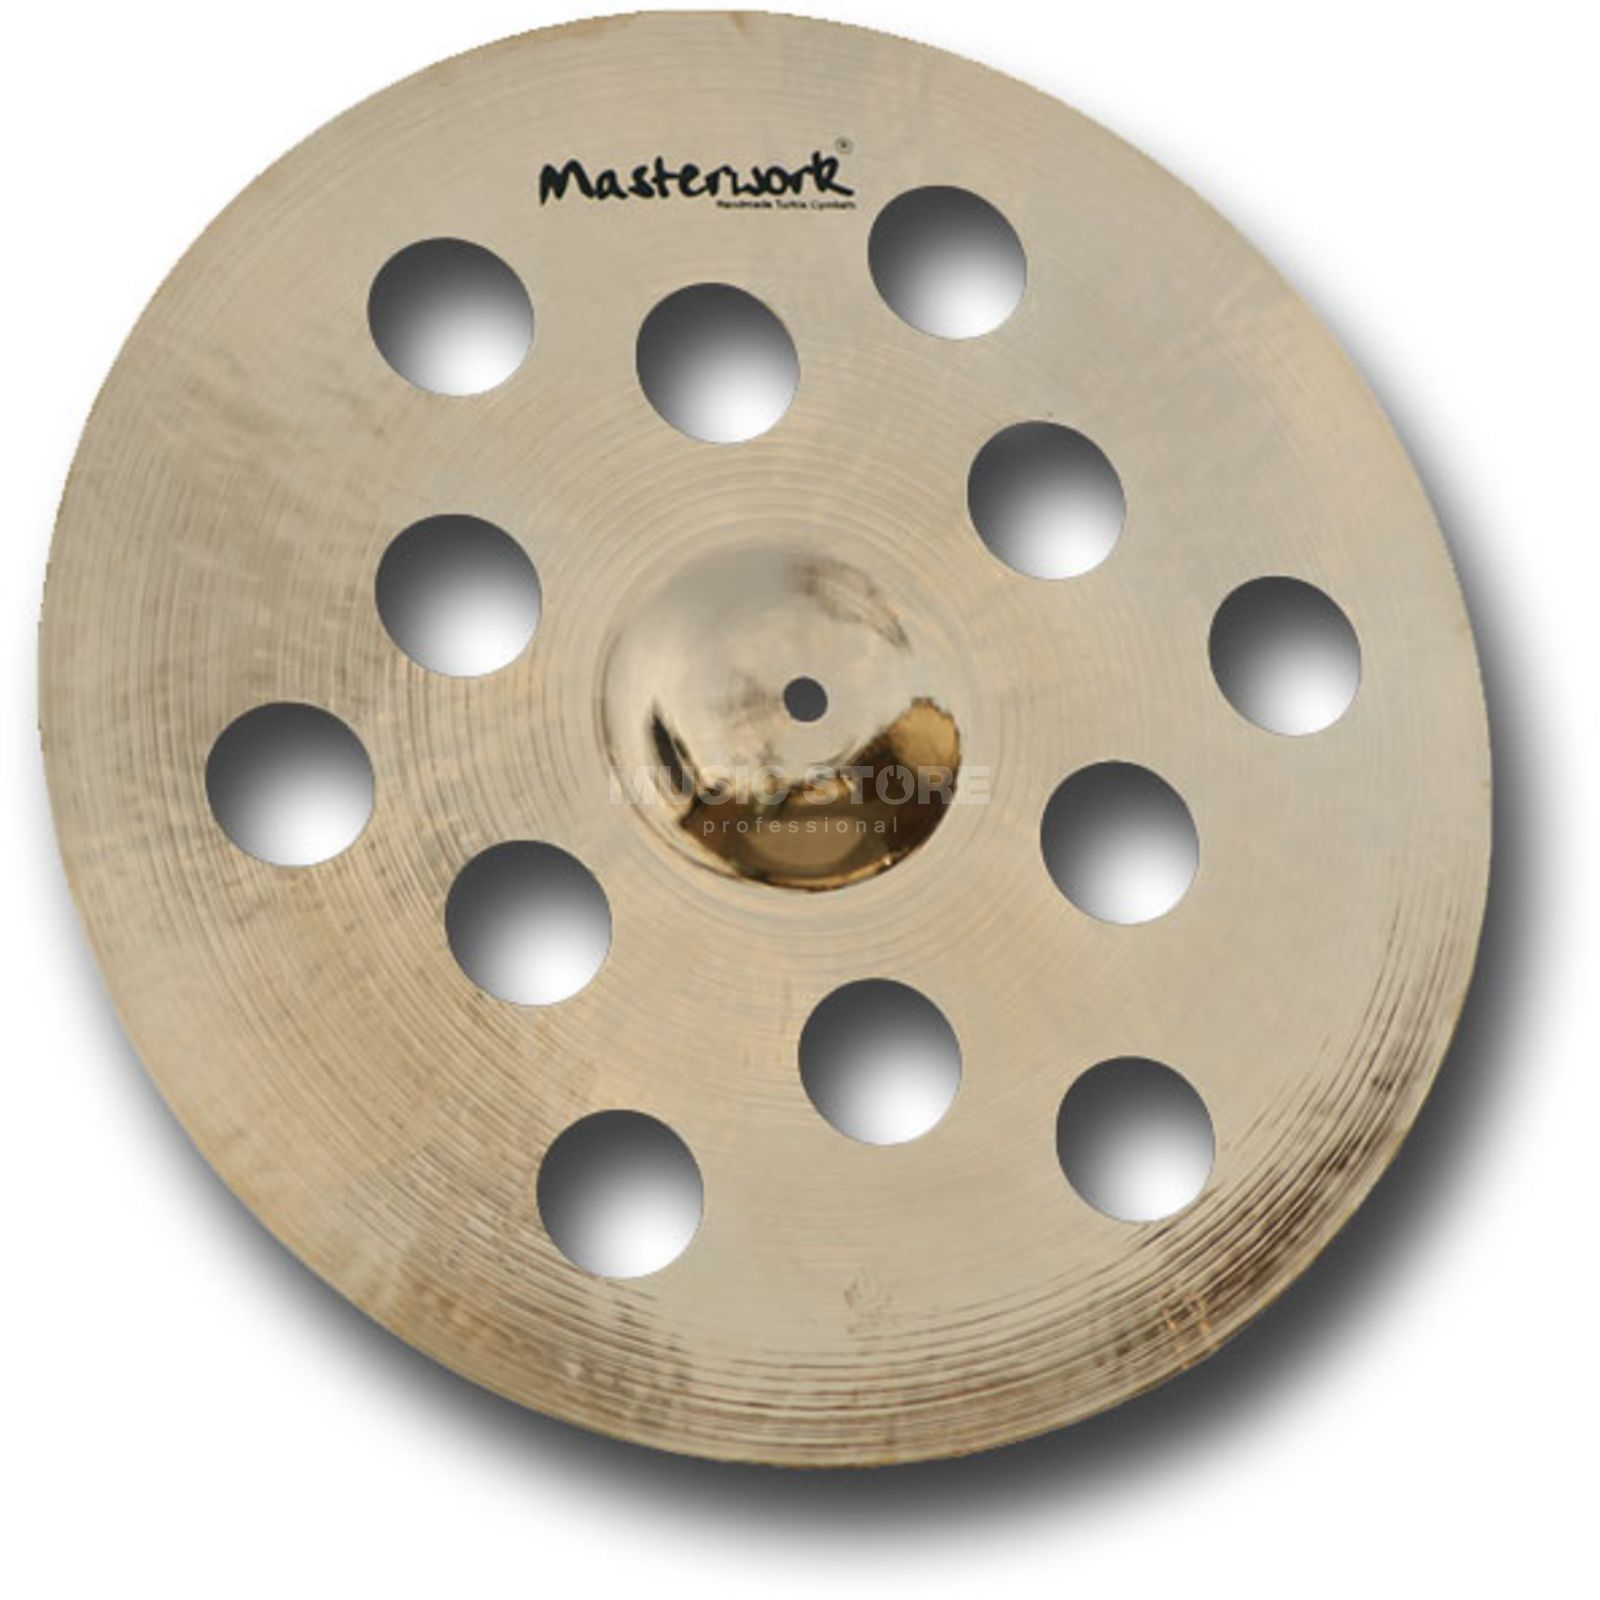 "Masterwork Resonant FX Crash 17"", Brilliant Finish Product Image"